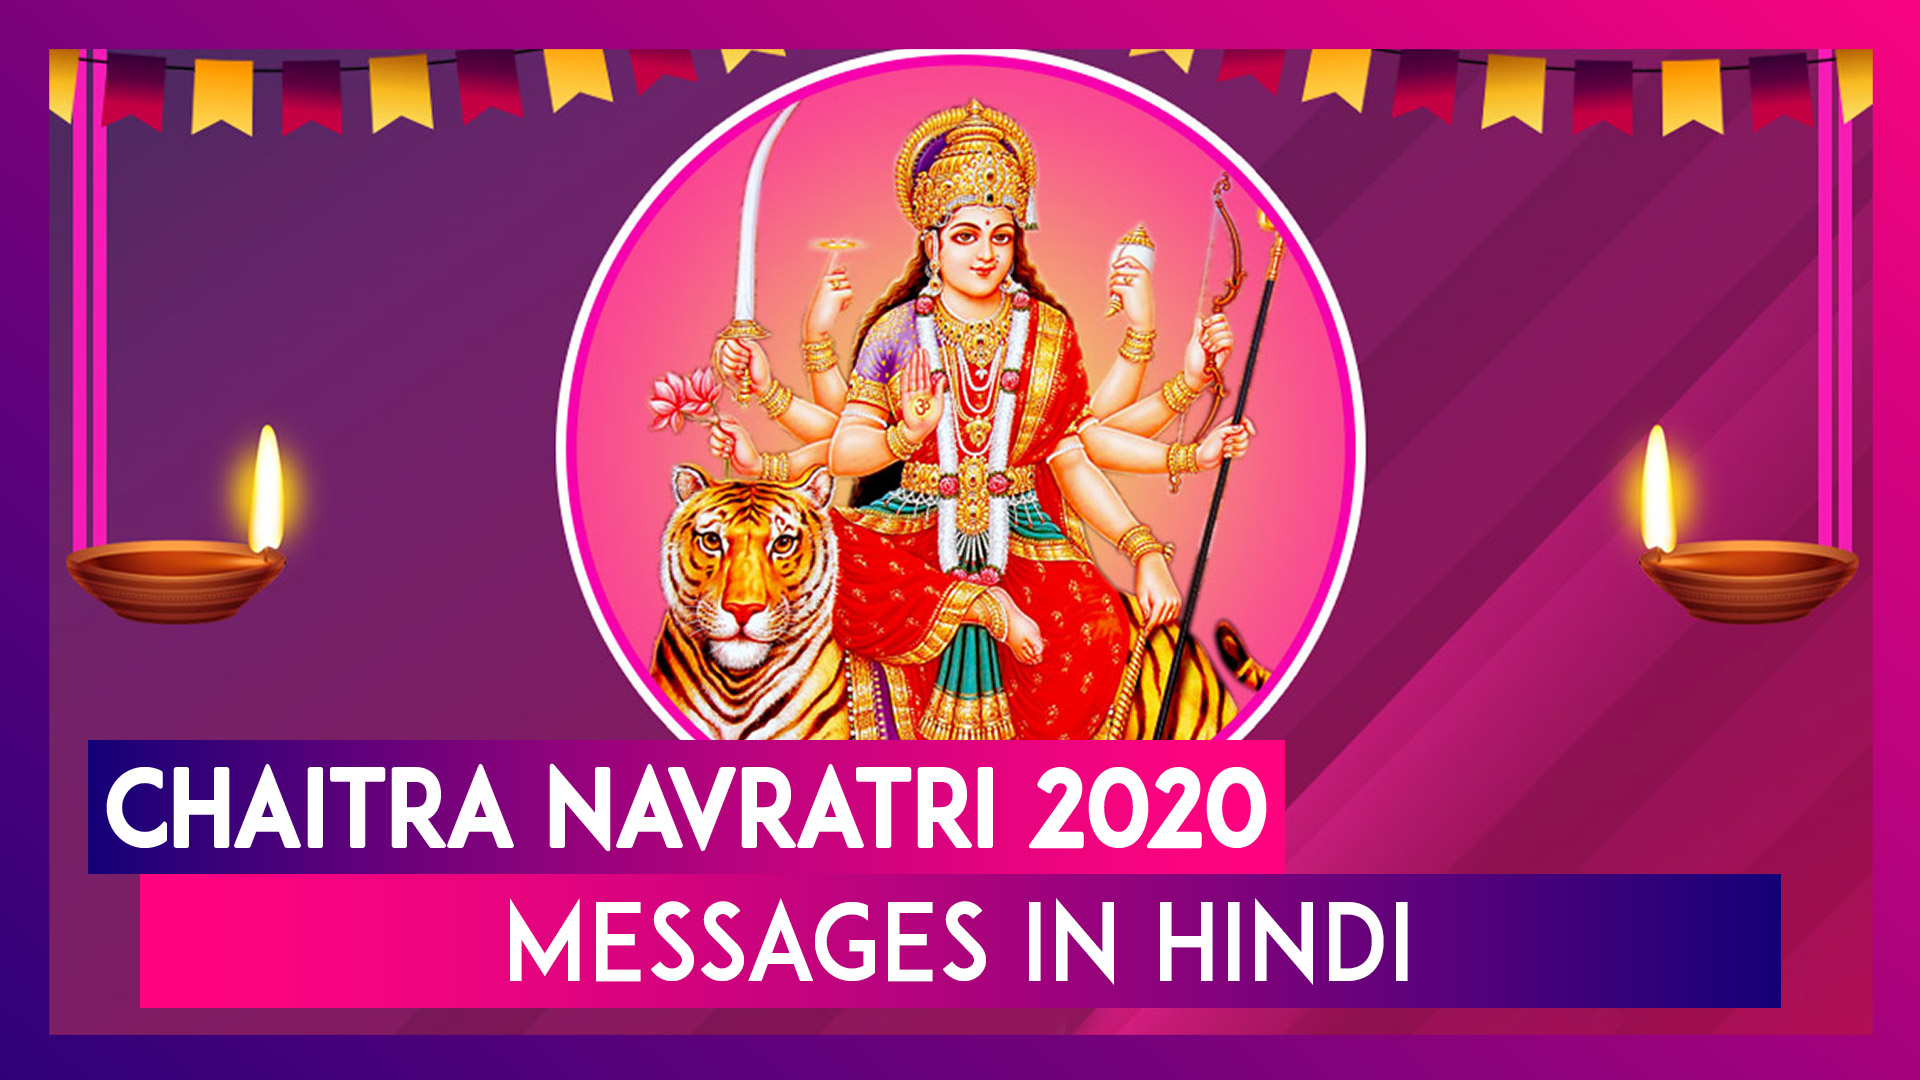 Chaitra Navratri 2020 Messages In Hindi: चैत्र नवरात्रि पर भेजने के लिए Wishes, SMS, Quotes